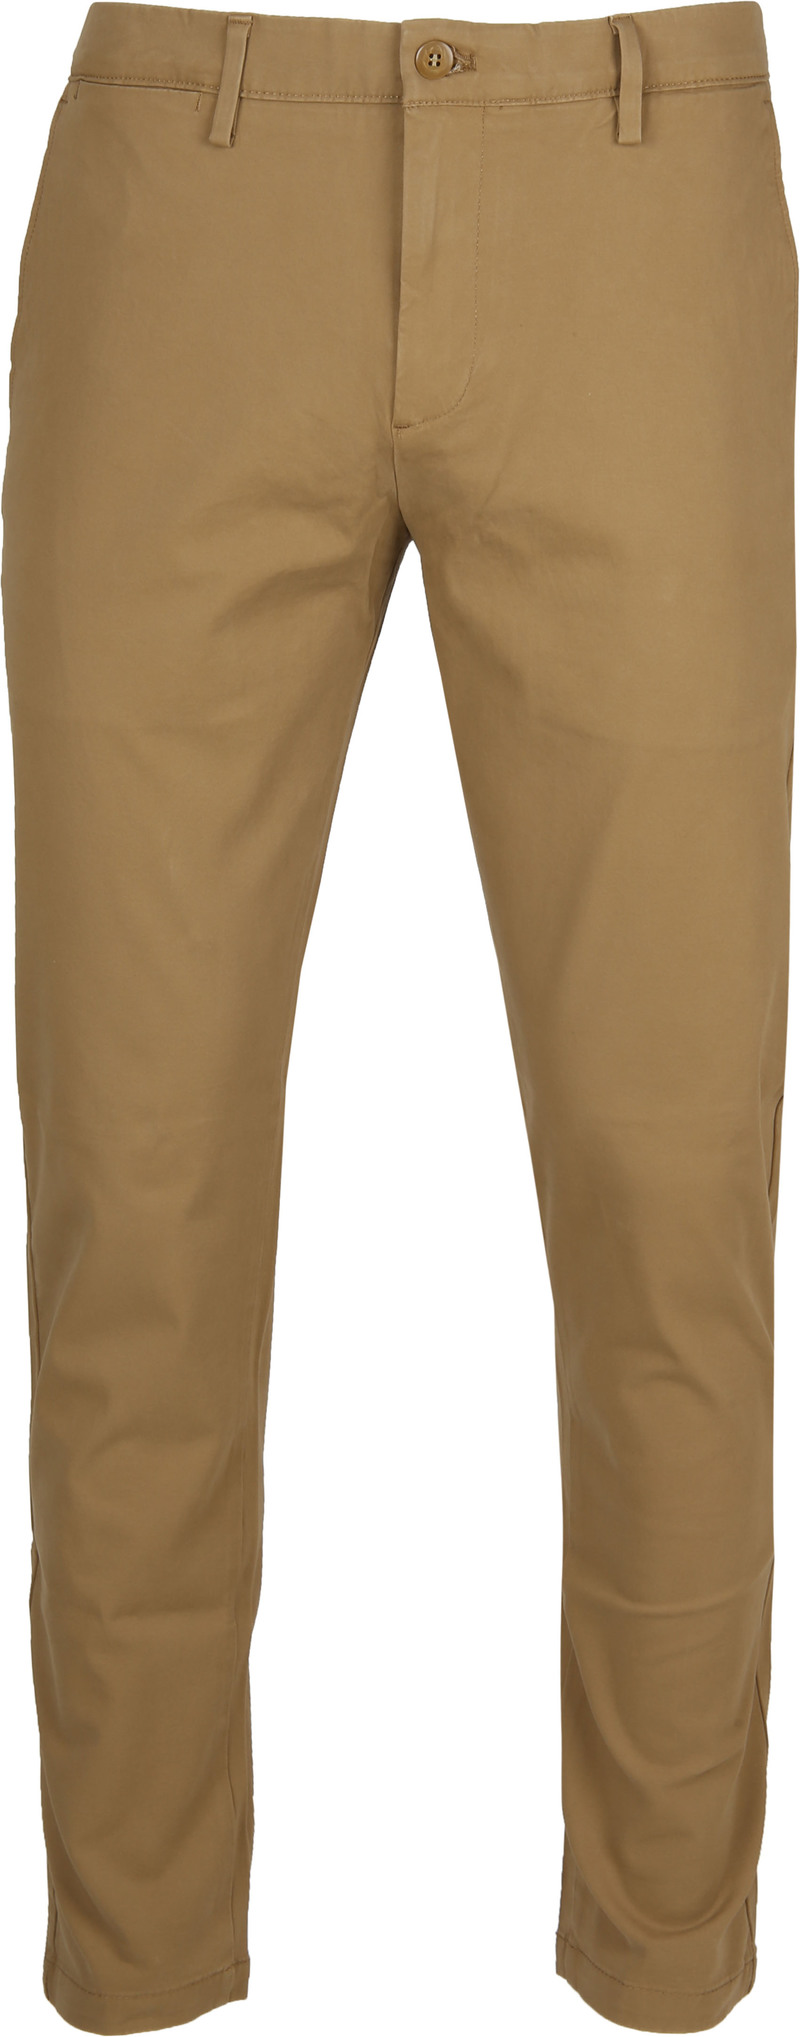 Dockers Alpha Tapered Chino 360 Flex Khaki foto 0